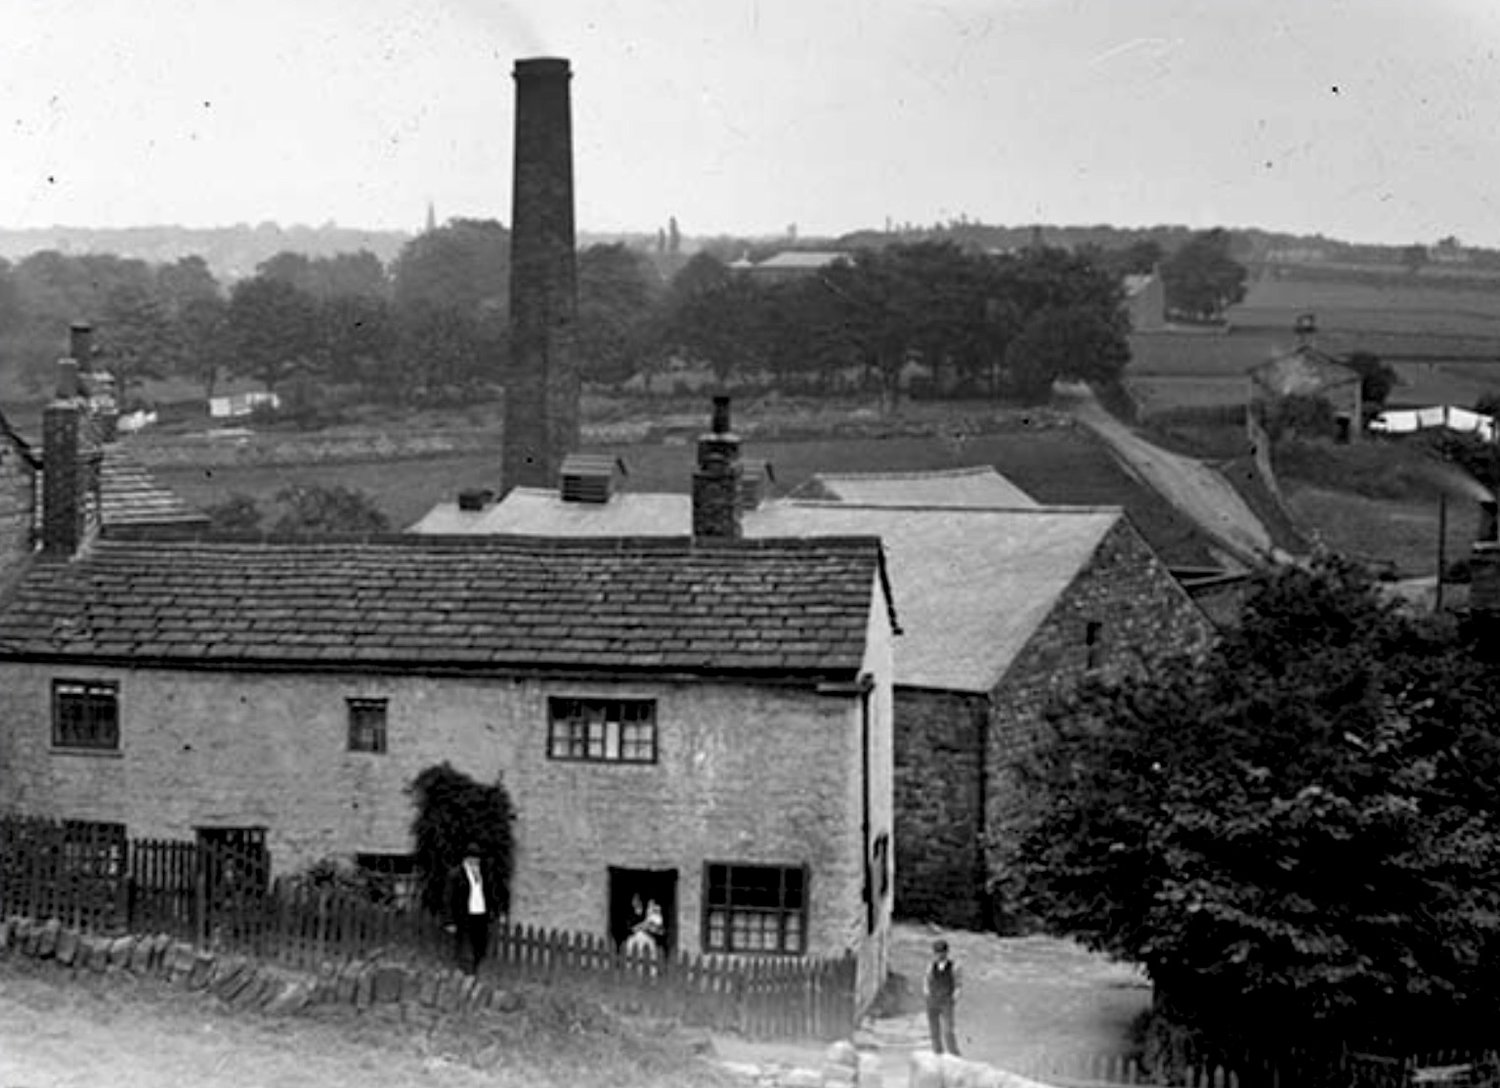 22  Woodland Dye Works (formerly Old Oil Mill) (demolished), c1890